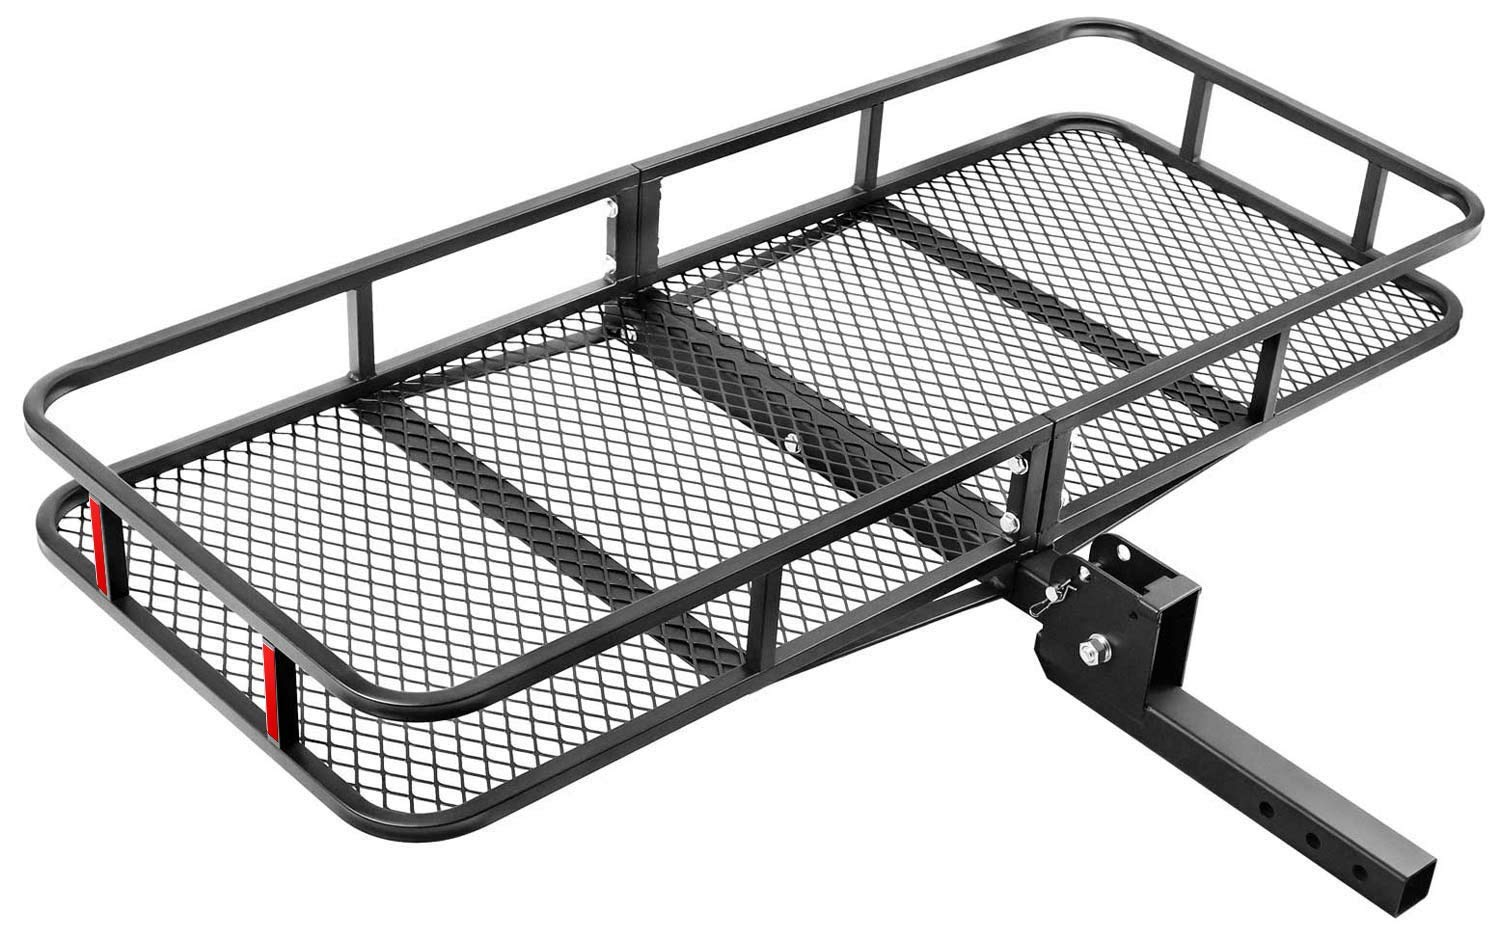 Leader Accessories Hitch Mount Cargo Basket Folding Cargo Carrier Luggage Basket 60'' L x 24'' W x 6'' H with 500 LB Capacity Fits 2'' Receiver